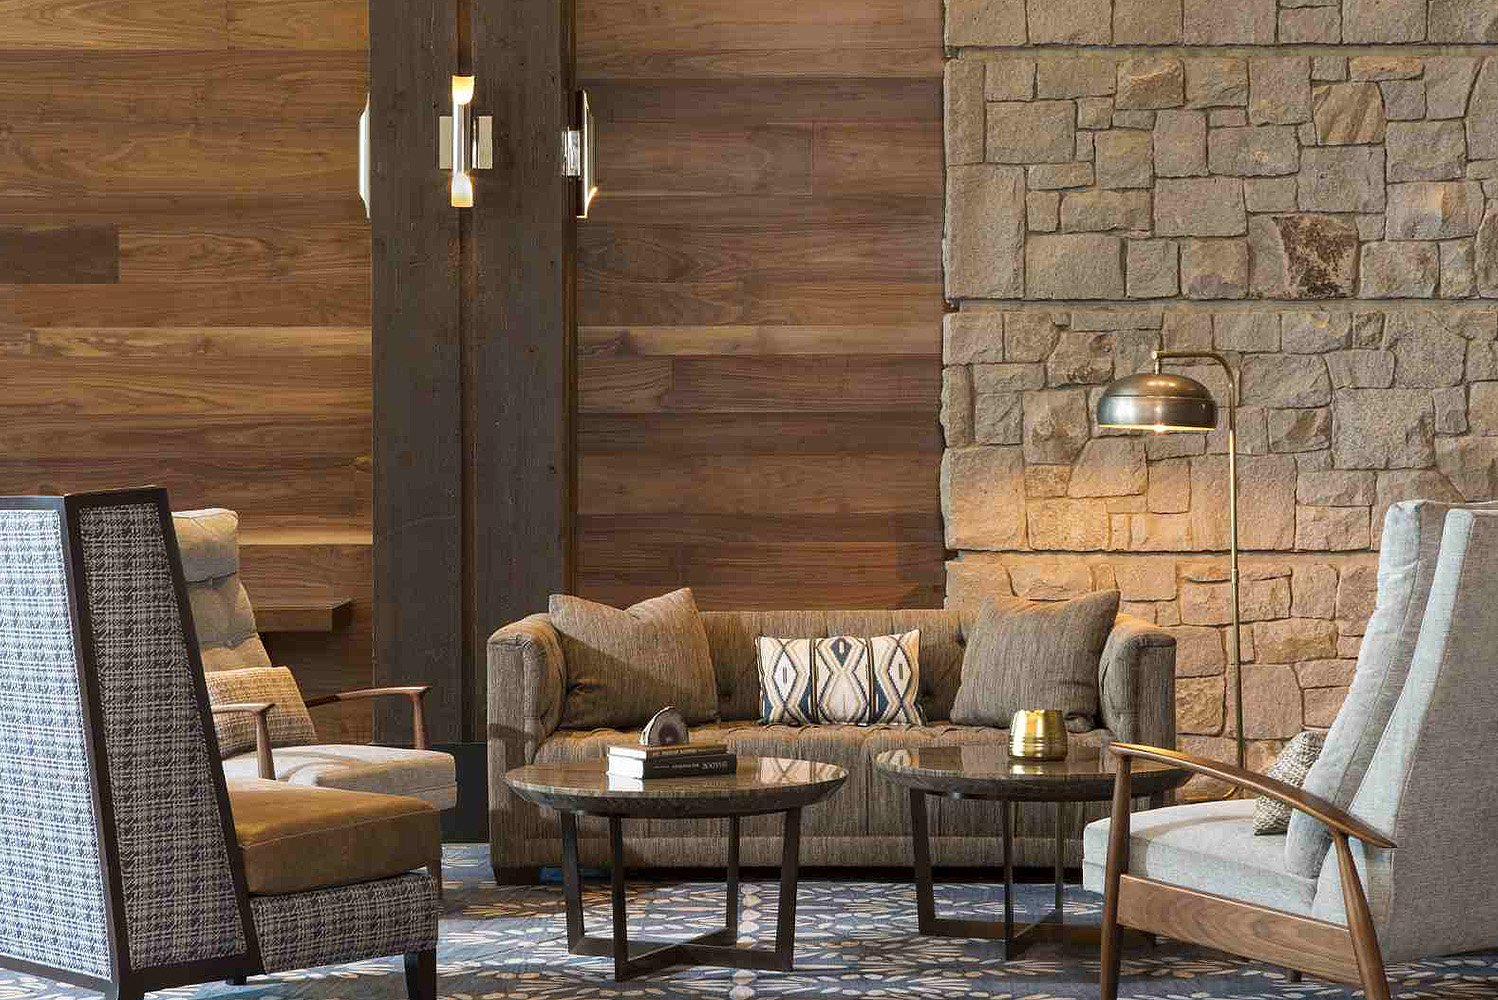 Hirsch Bedner Associates (HBA) completed The Lodge at Edgewood Resort.